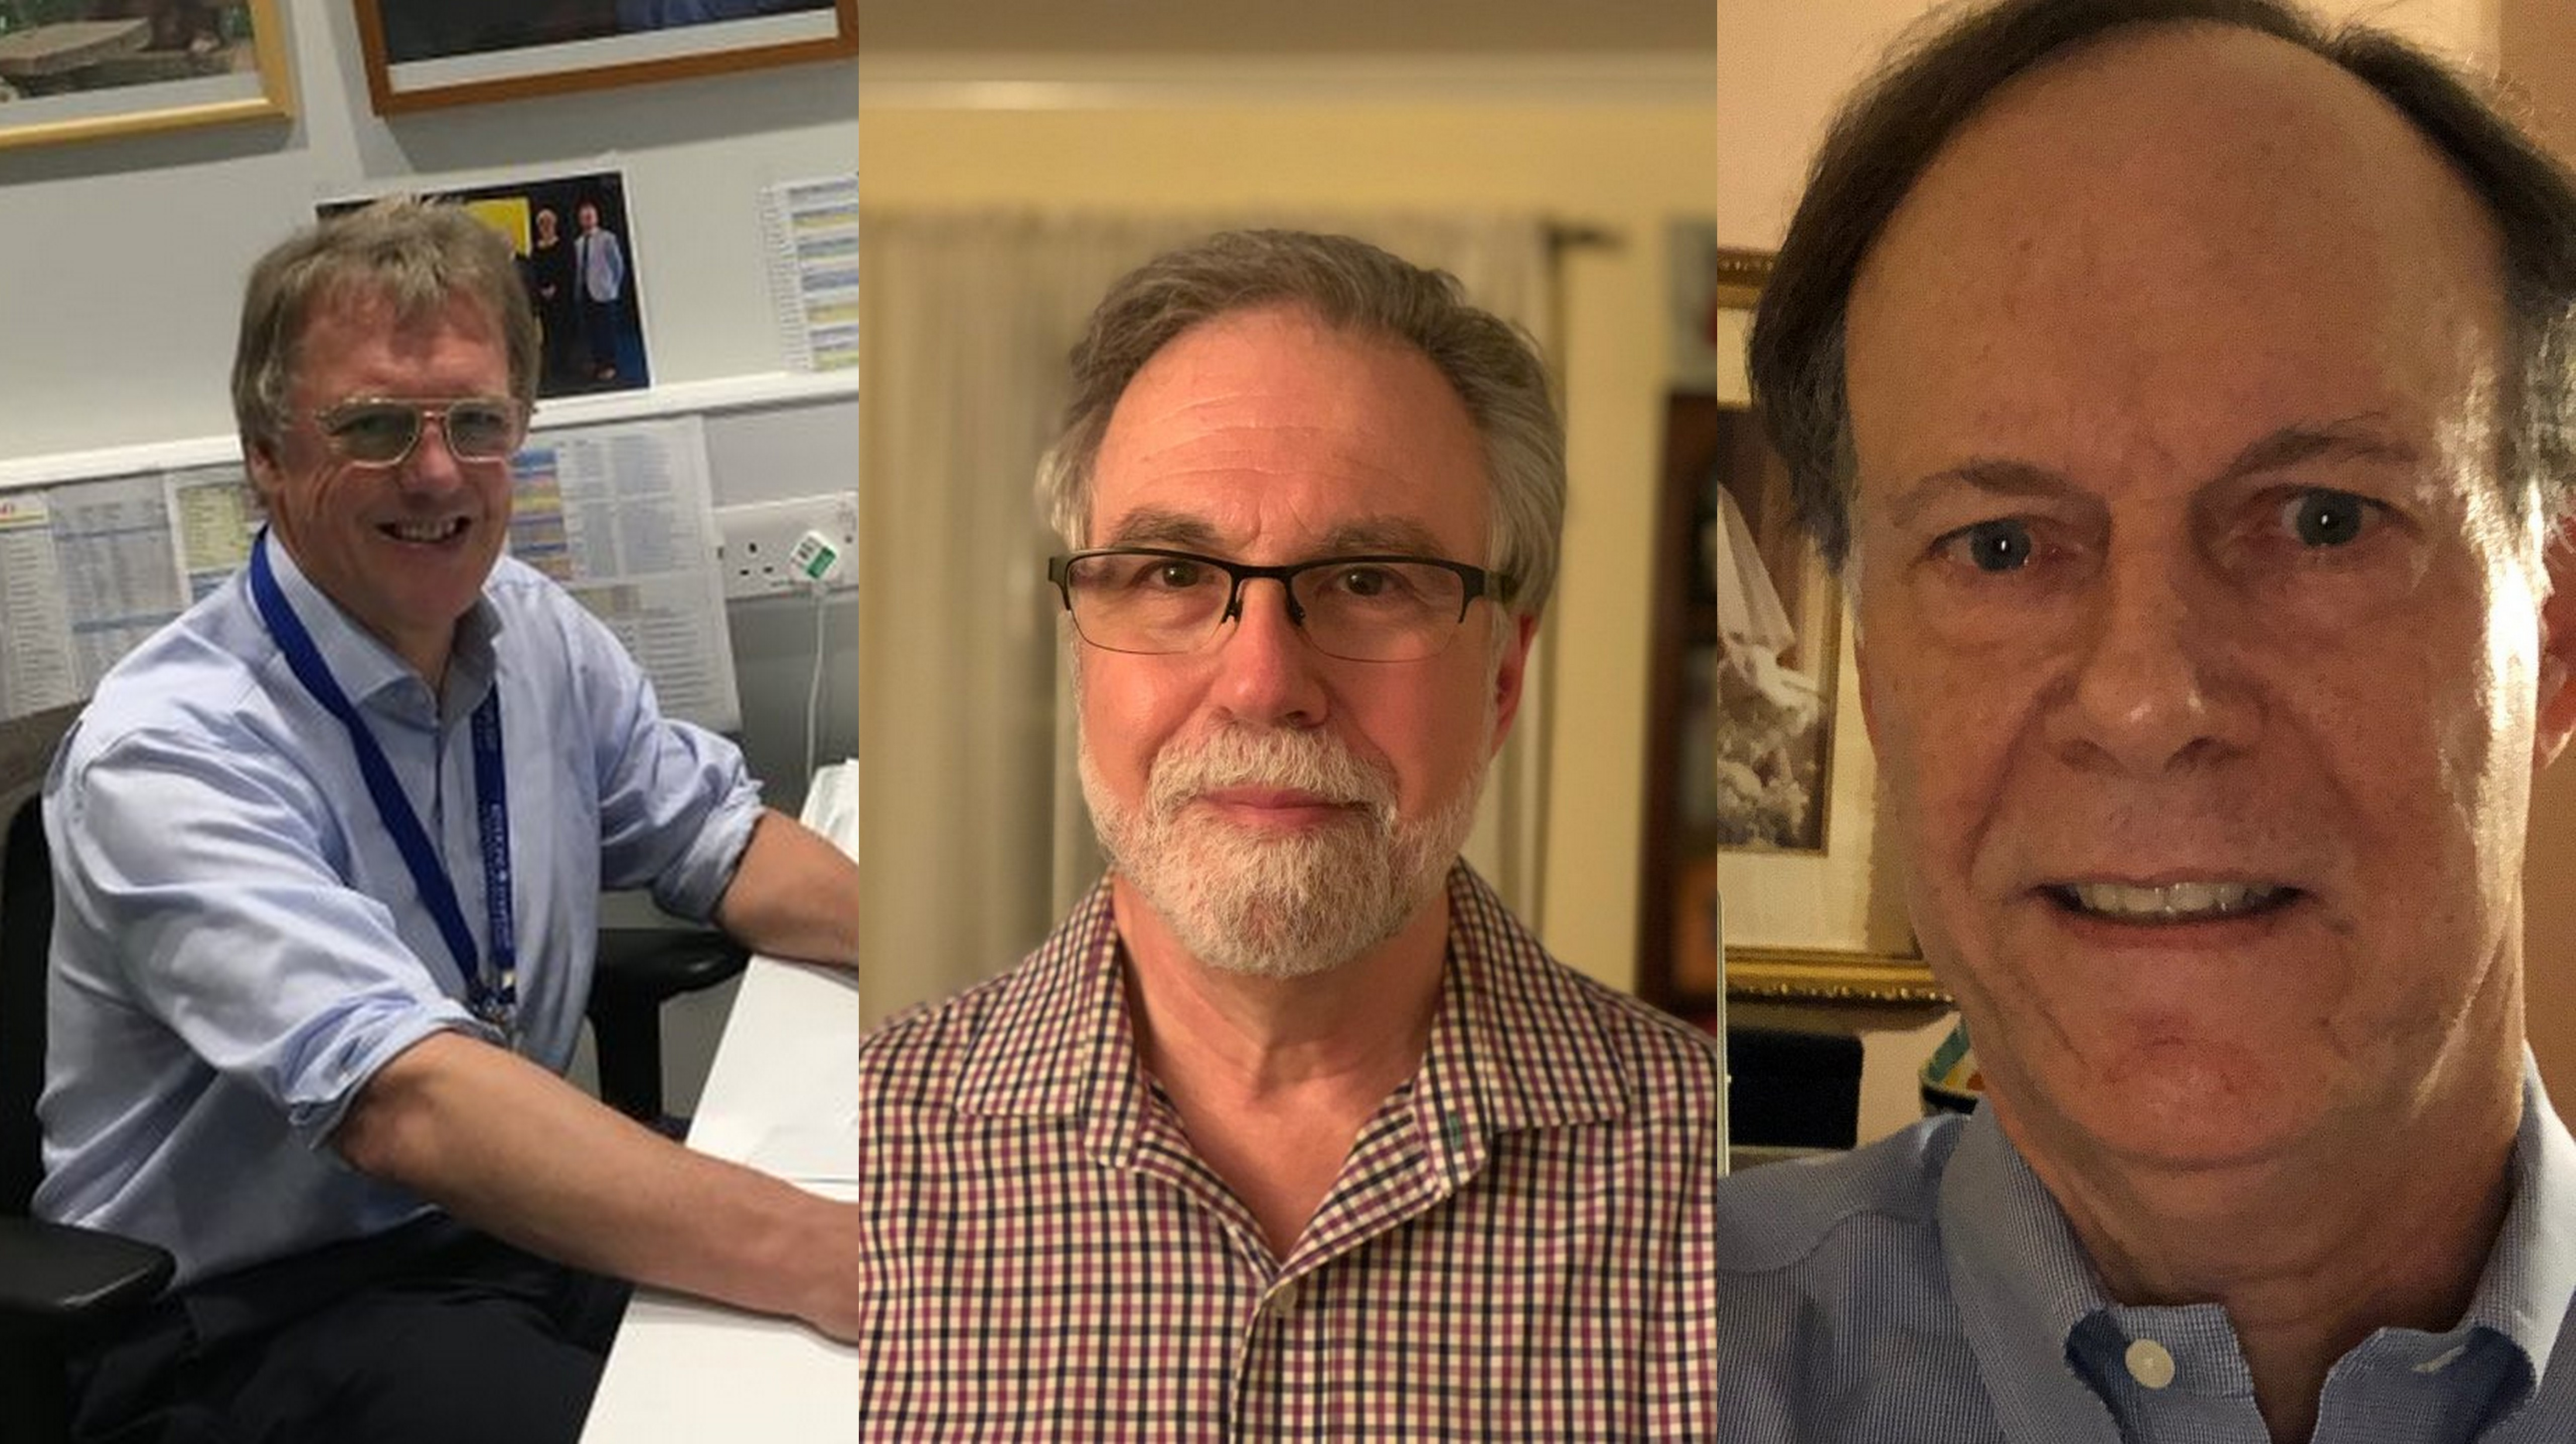 (From l to r): Peter Ratcliffe, Gregg Semenza and William Kaelin have won the Nobel Prize for Medicine. Photos courtesy: Twitter/@NobelPrize